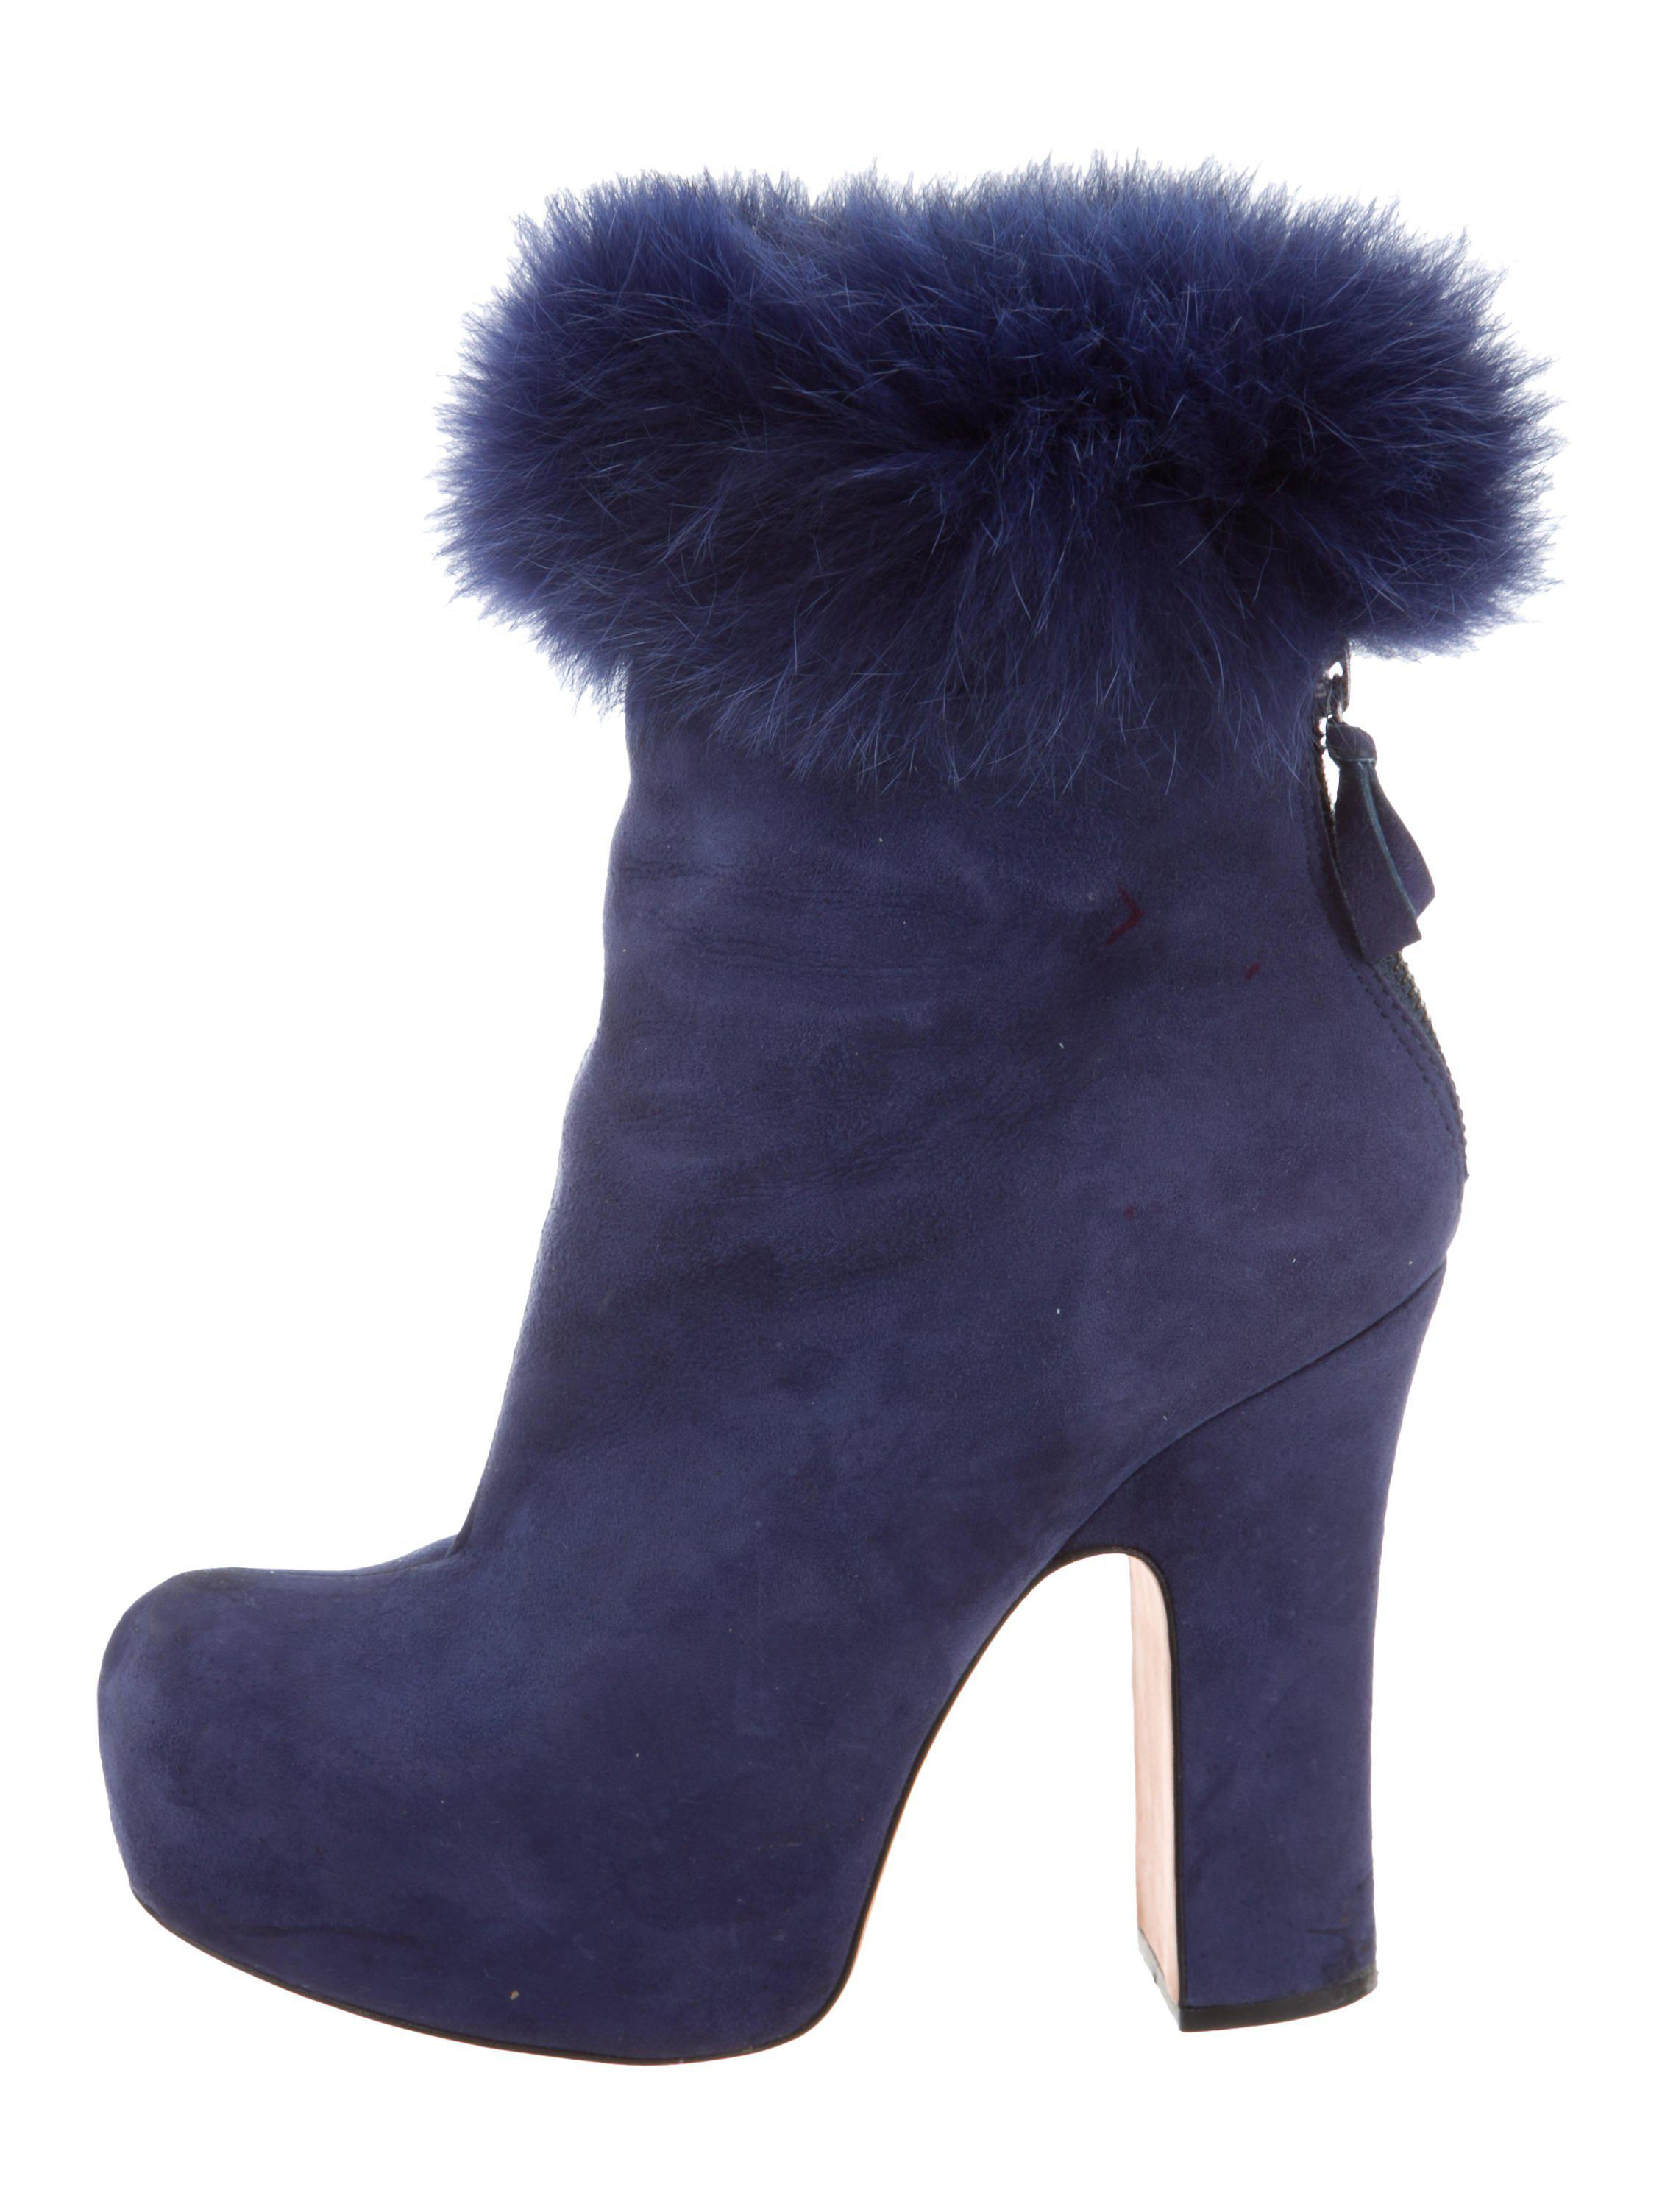 pictures sale online marketable cheap price Alice + Olivia Fur-Trimmed Suede Ankle Boots Manchester cheap price iFc2tkN